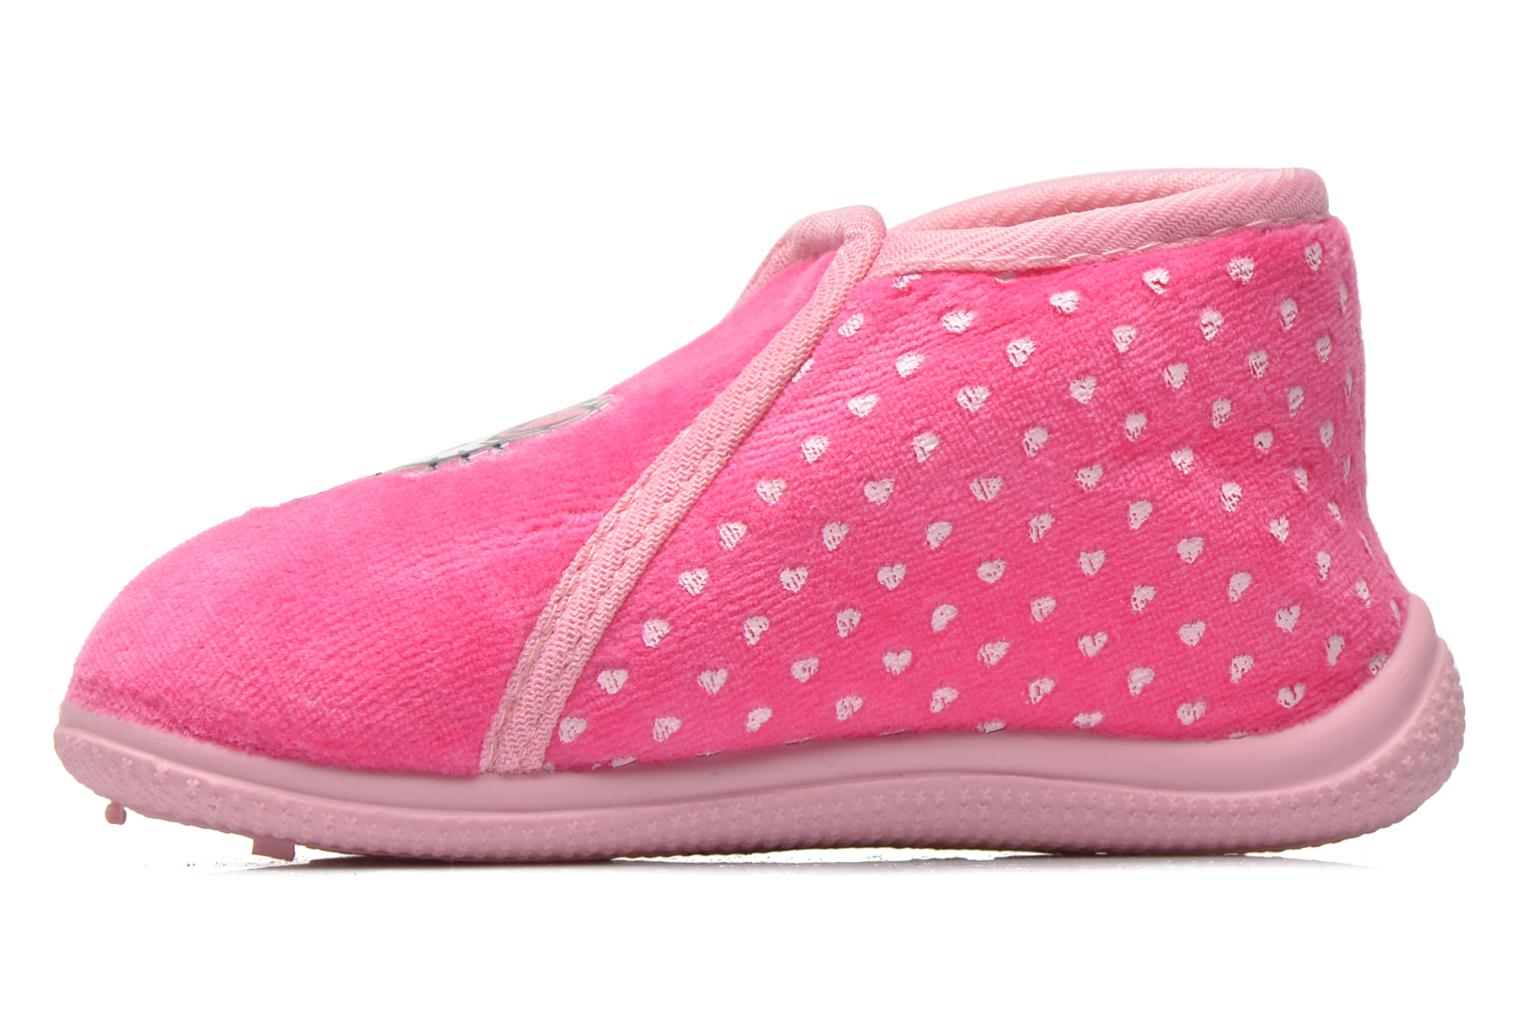 Chaussons Hello Kitty Hk Reste Rose vue face